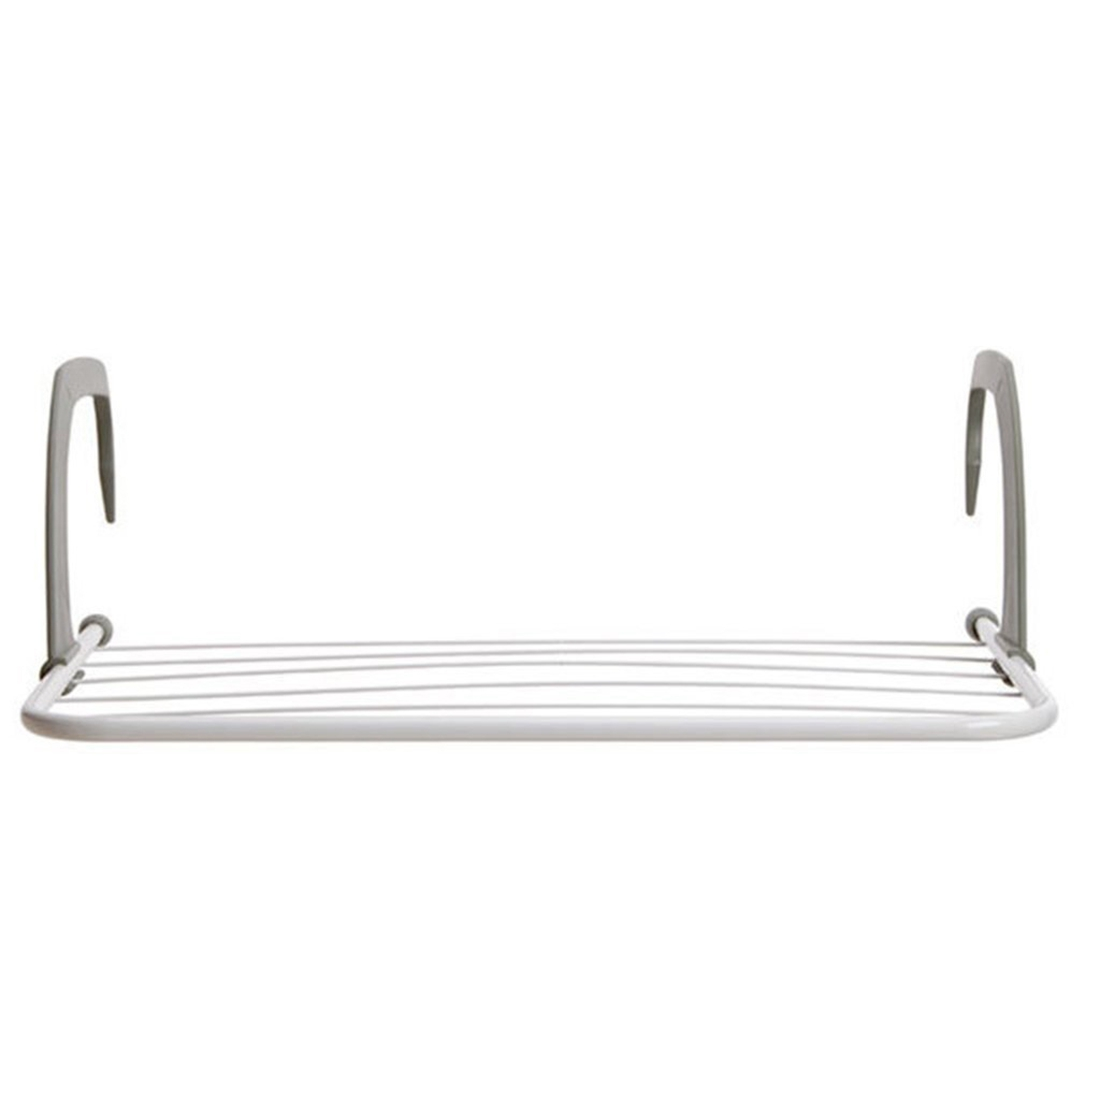 Portable Foldable <font><b>Drying</b></font> Rack Clothes Punch Free Hanger Winter Heating Radiator Balcony Clothes Hanger